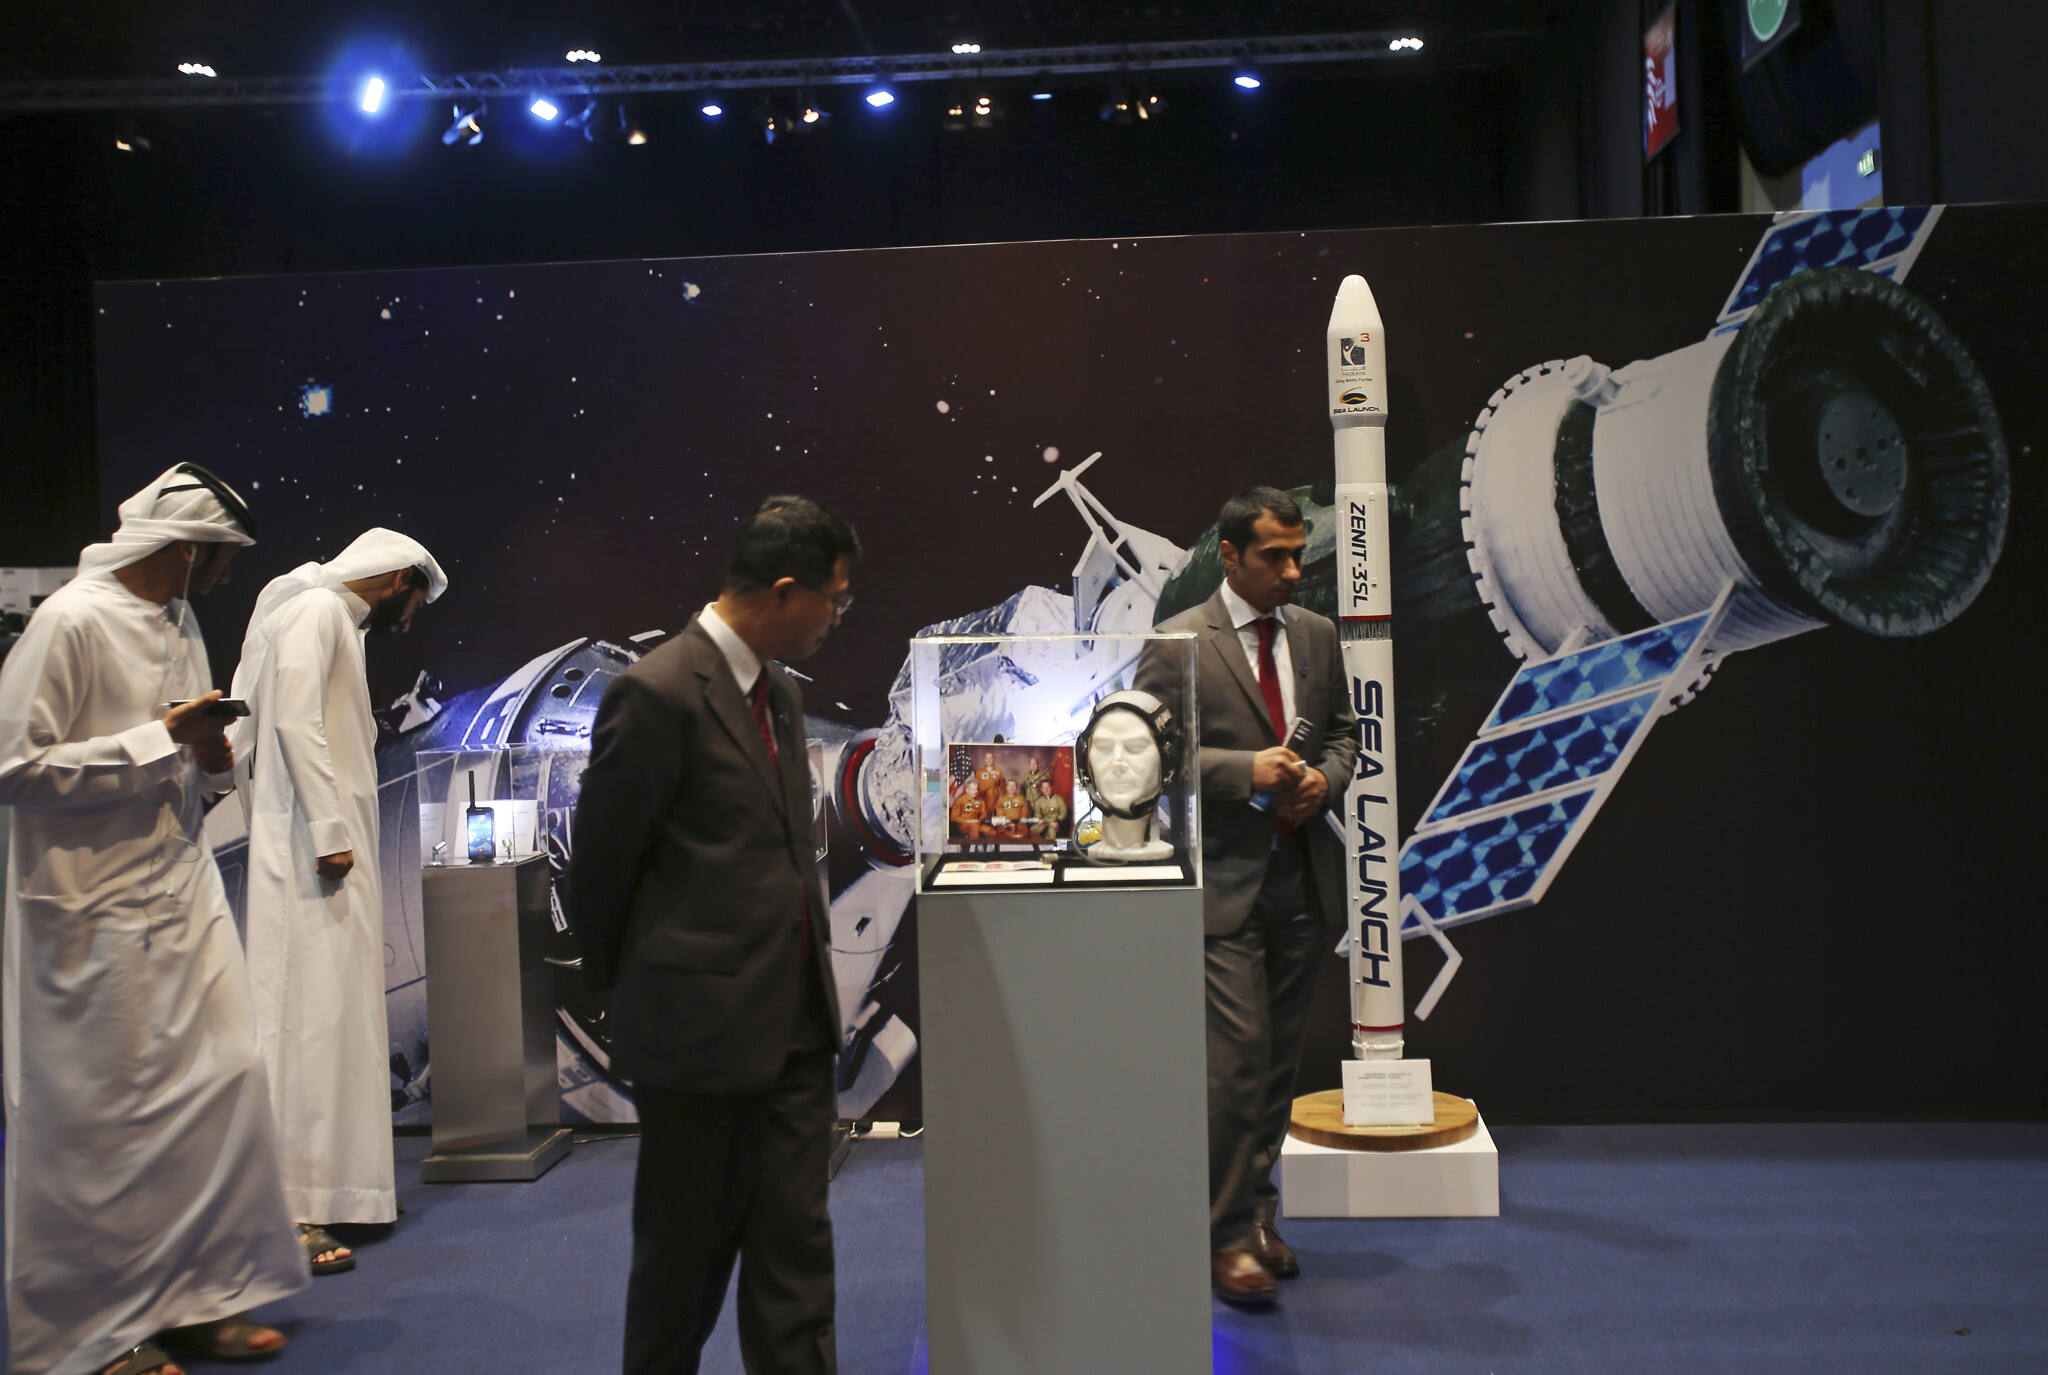 Mission to Mars: UAE set to become first Arab nation to explore other planets